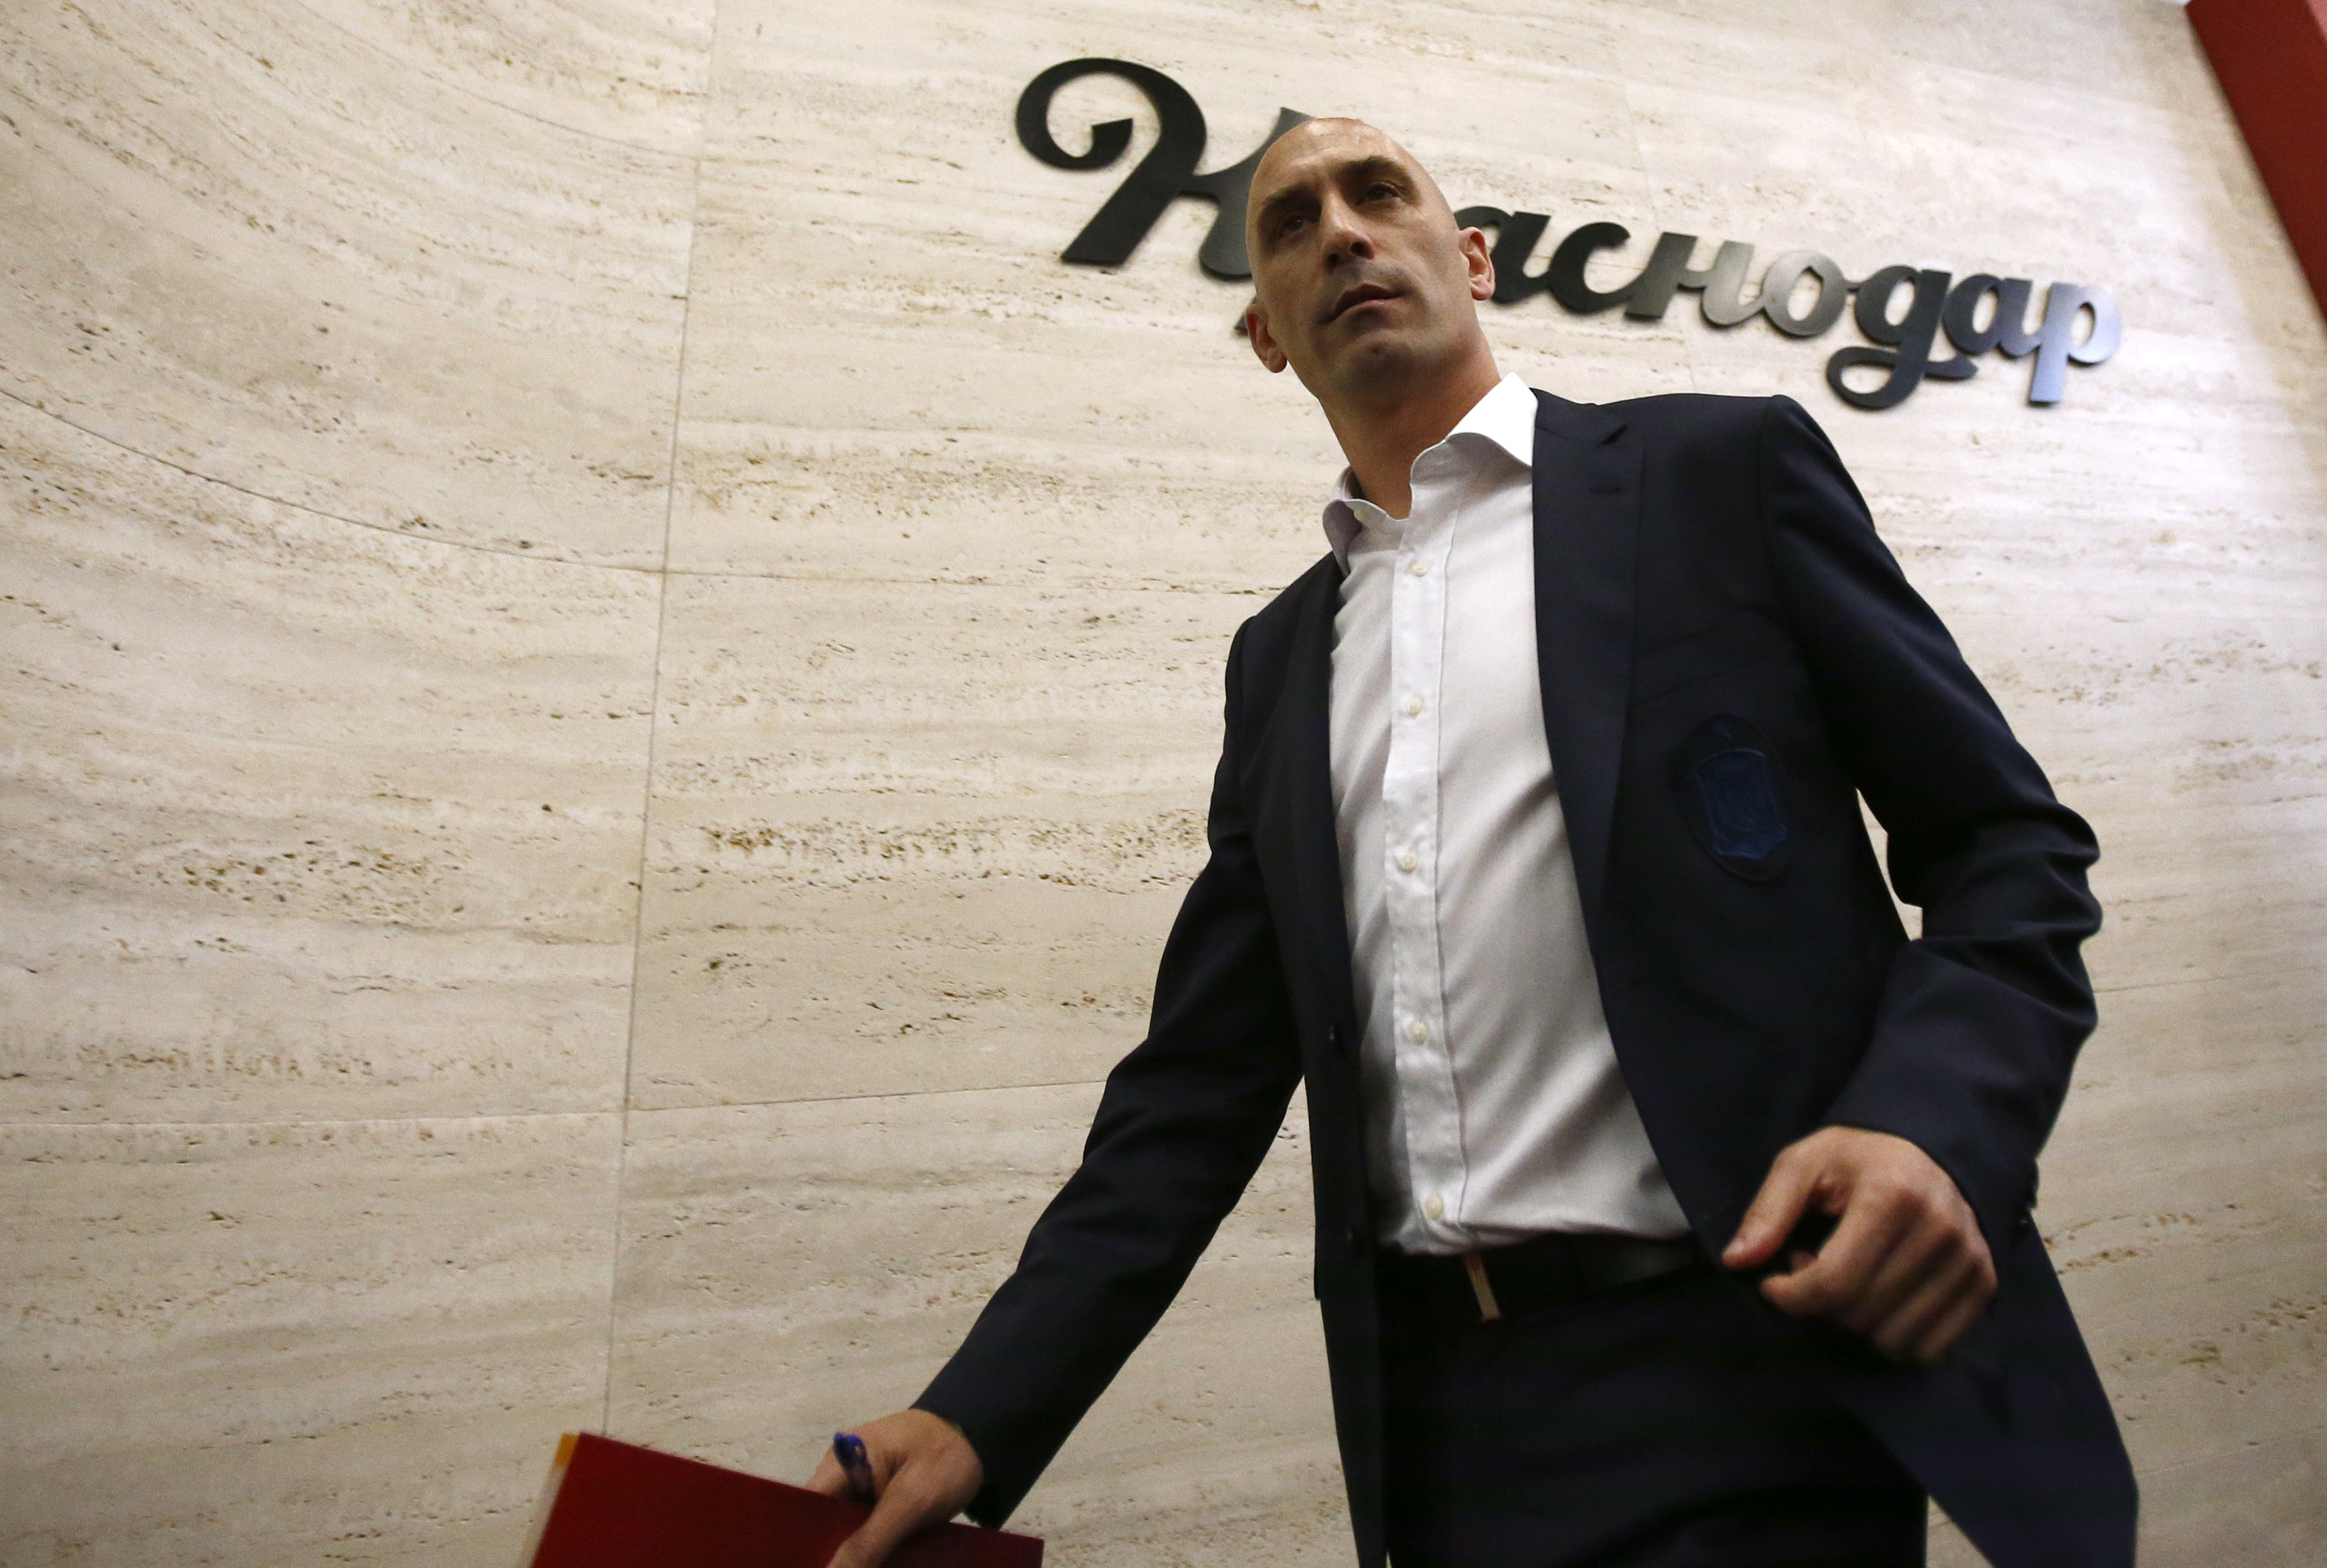 Rubiales leaves a press conference. Image: PA